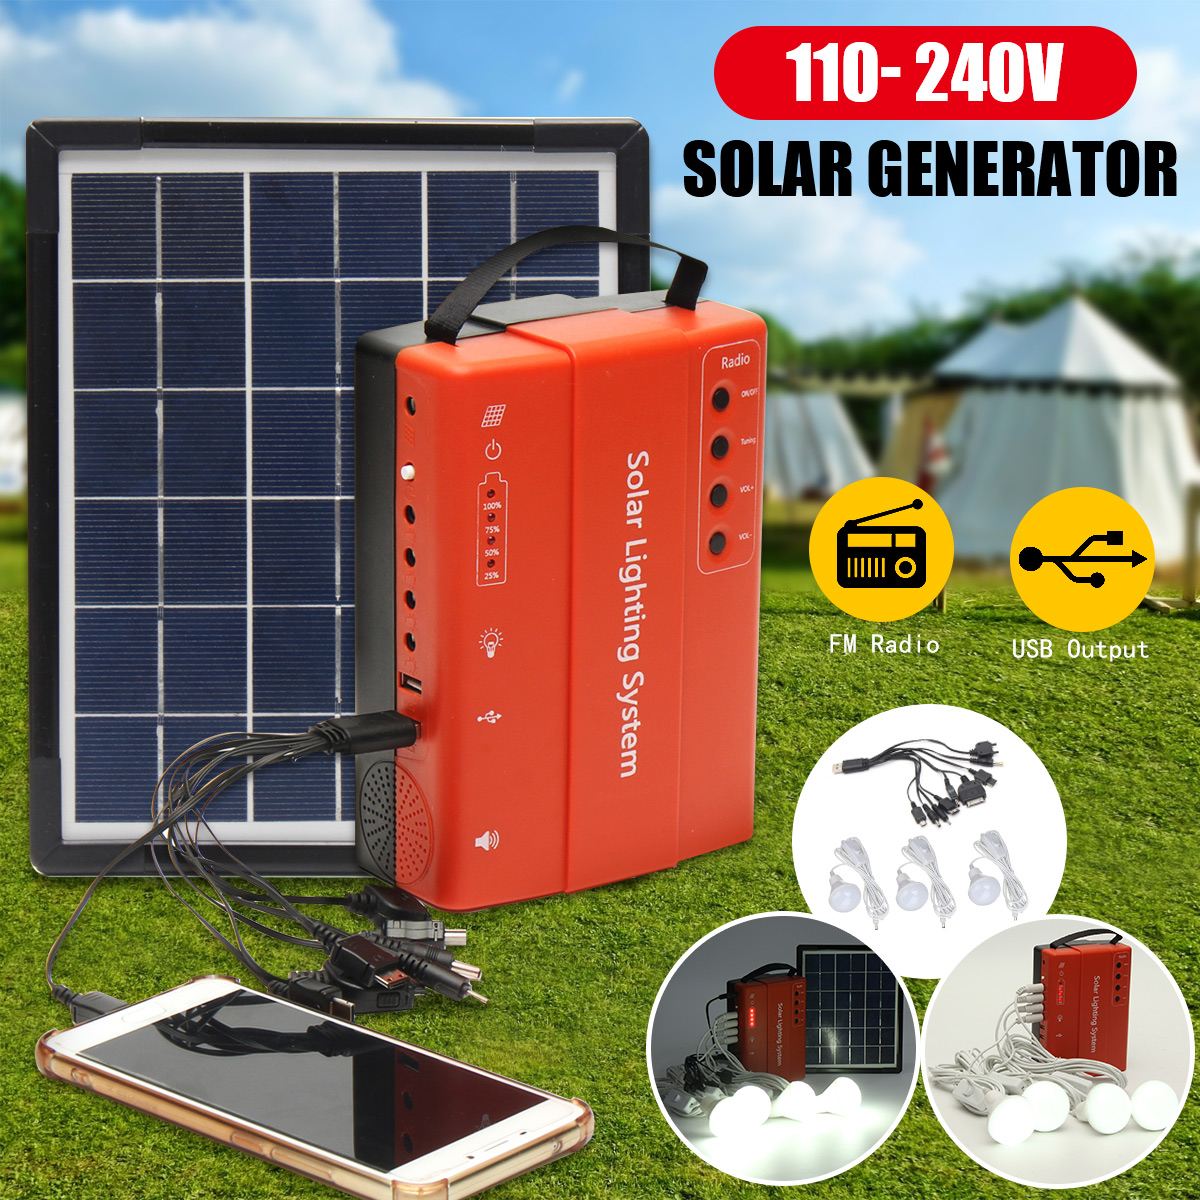 Home Outdoor Solar Panel Power Storage Generator System LED Light USB Charger Portable LED Lighting System Support FM Radio icoco 3 in 1 emergency charger flashlight hand crank generator wind up solar dynamo powered fm am radio charger led flashlight